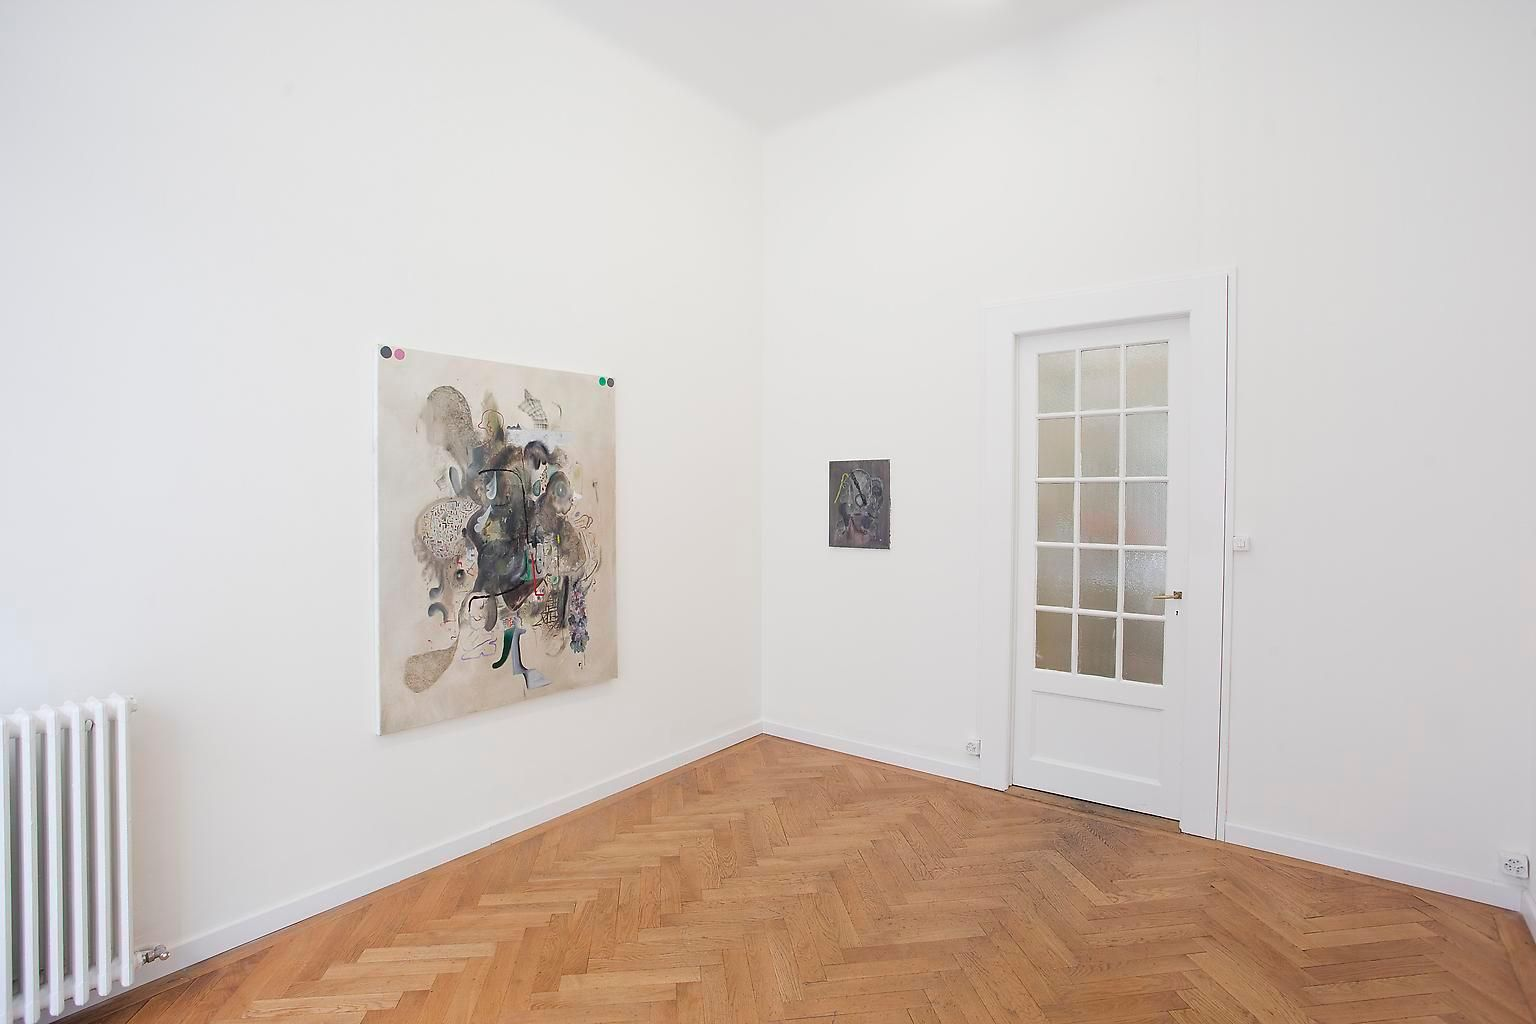 Installation view, Michael Bauer, Hänkor (Ice-cream) – H.S.O.P. – 1973, Marc Jancou, Geneva, September 13 - November 17, 2012